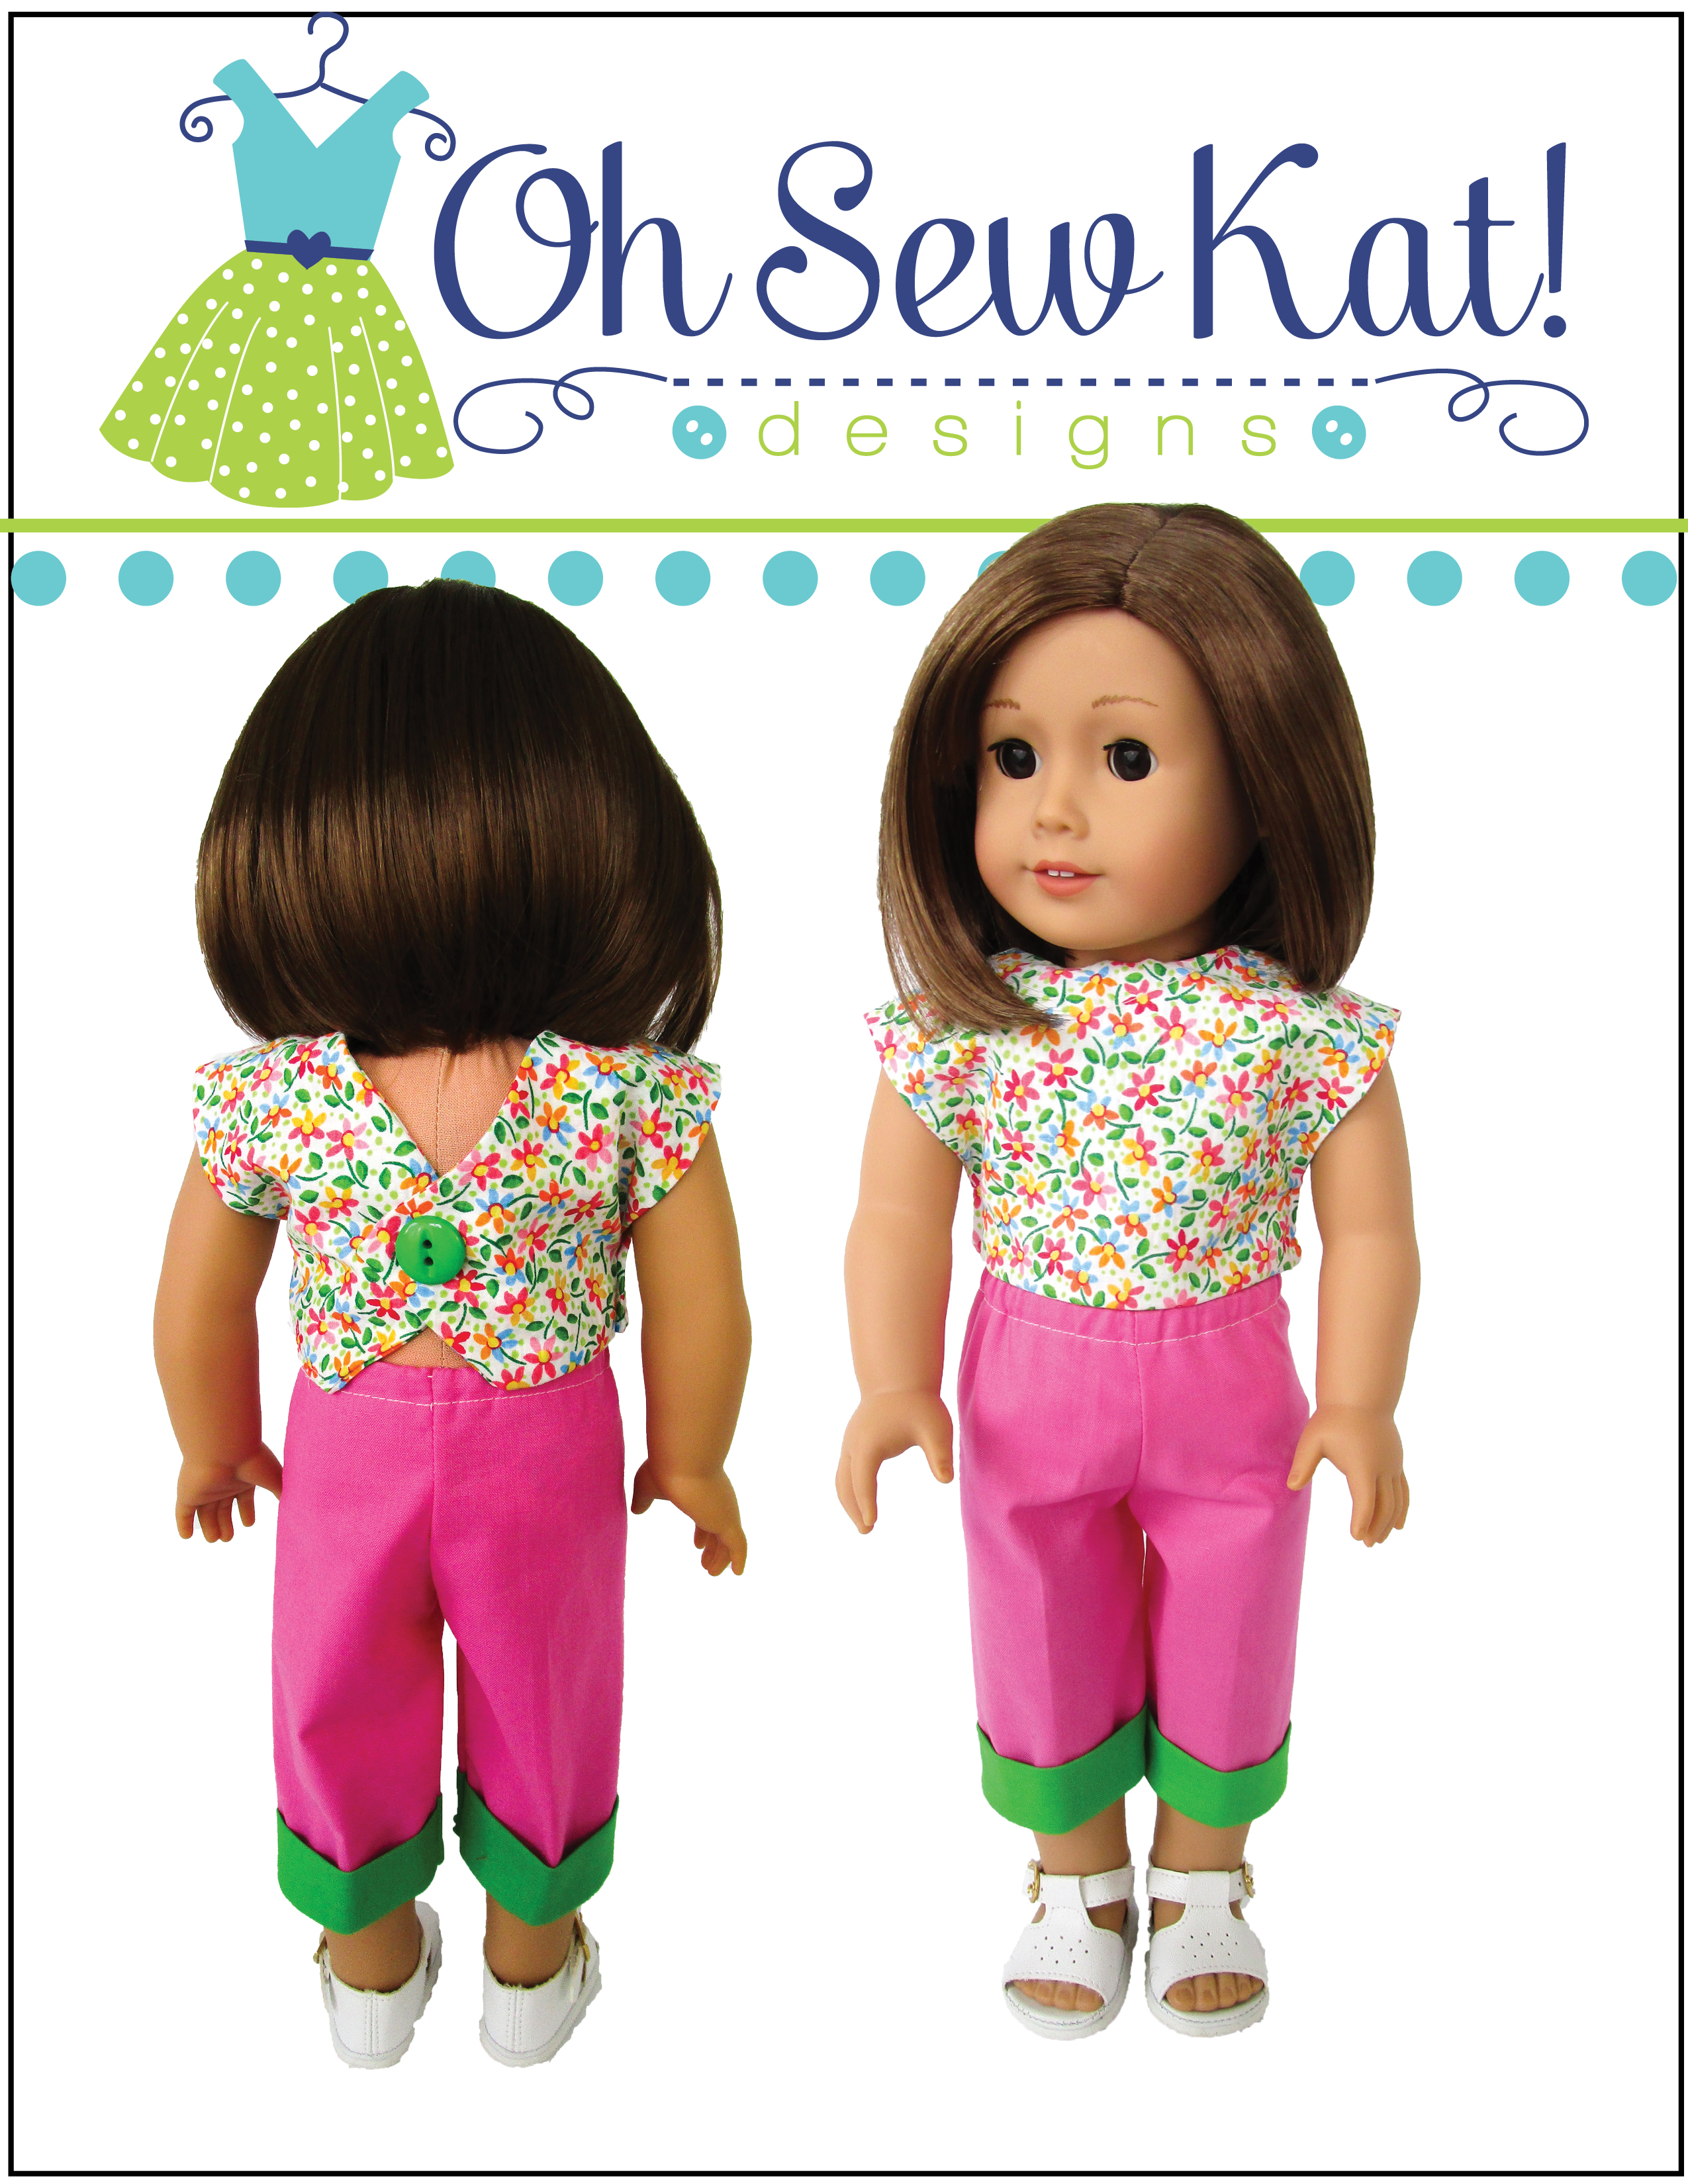 Make this super quick and easy Picnic Play outfit for your 18 inch doll with the PDF digital sewing pattern from OhSewKat. Fat quarter friendly, quick sewing project to make 18 inch doll capris, backpack and simple shirt. Find more patterns in the OHSewKat etsy Shop.